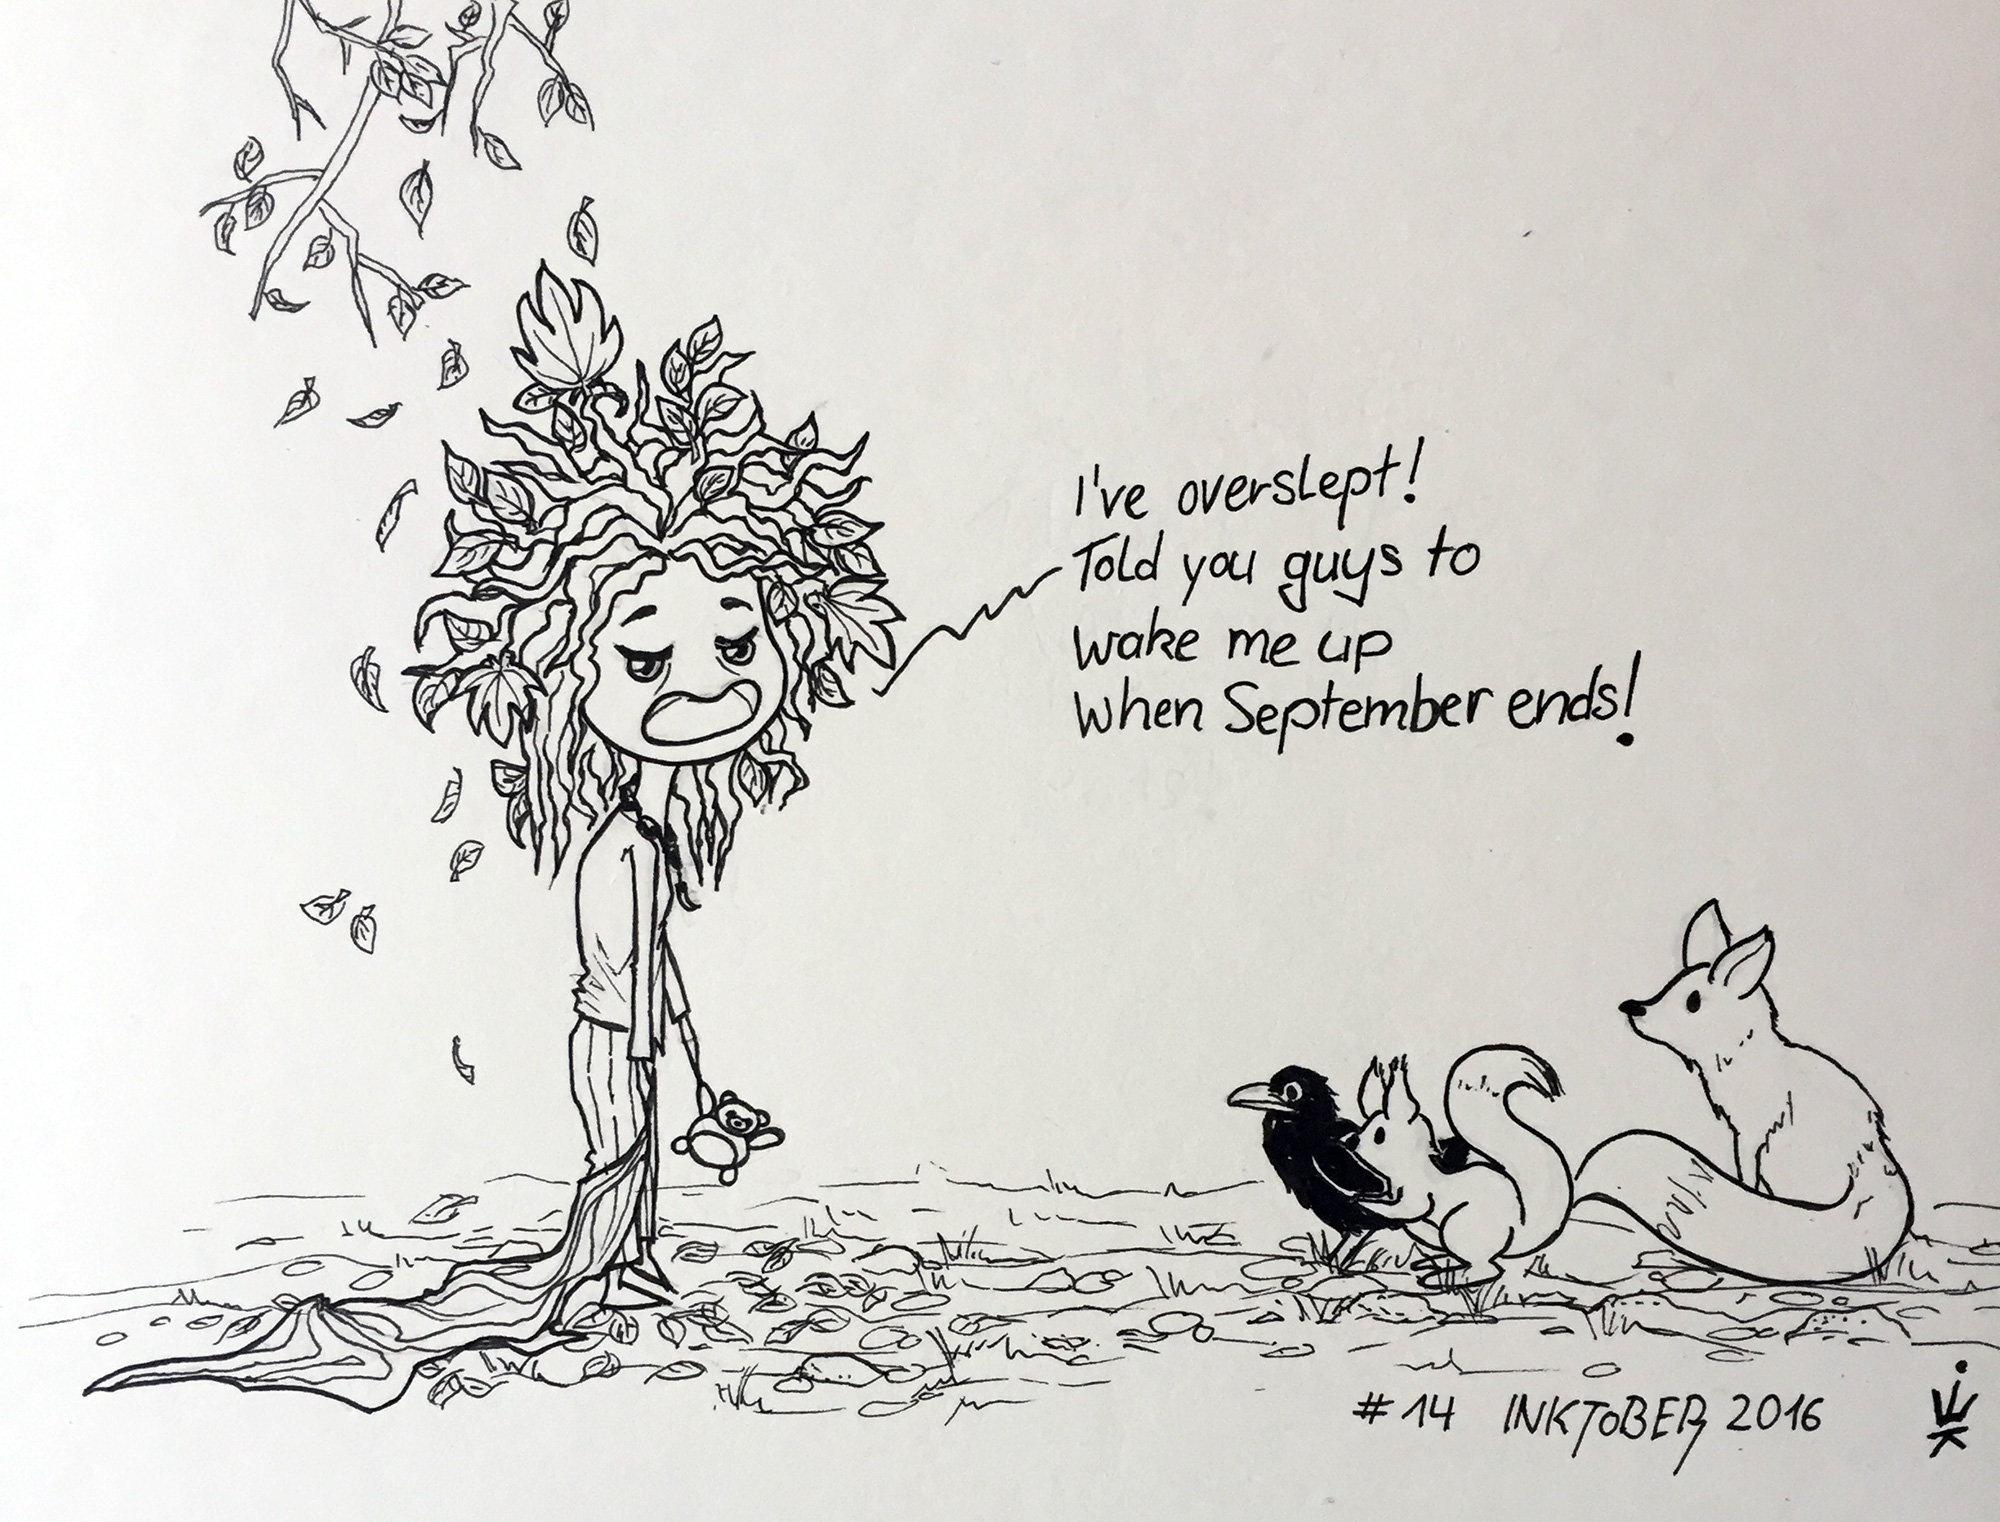 Inktober 2016 - 14: Grumpy wood fairy (c) Esther Wagner